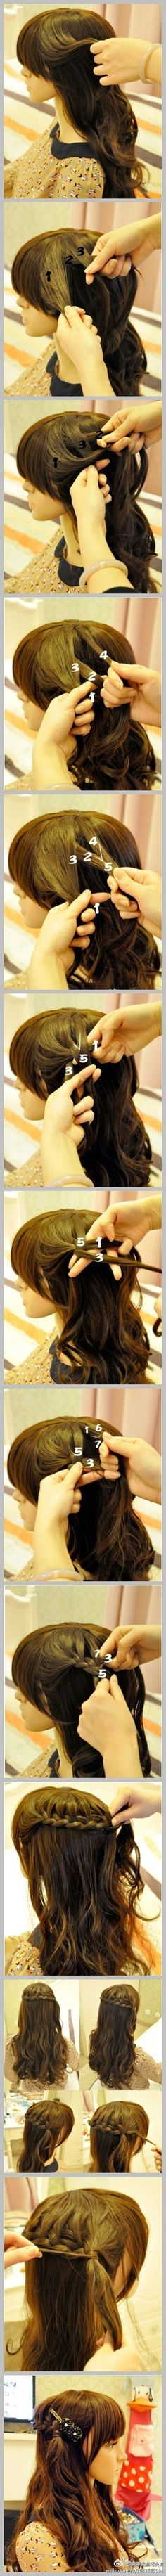 Find best Homemade Hair Care Tips and Hair styling without damage your Hairs. Check out our damaged hair guide and best Homemade Hair Care Tips Love Hair, Great Hair, Gorgeous Hair, Pretty Hairstyles, Girl Hairstyles, Braided Hairstyles, Tips Belleza, Hair Day, Hair Hacks